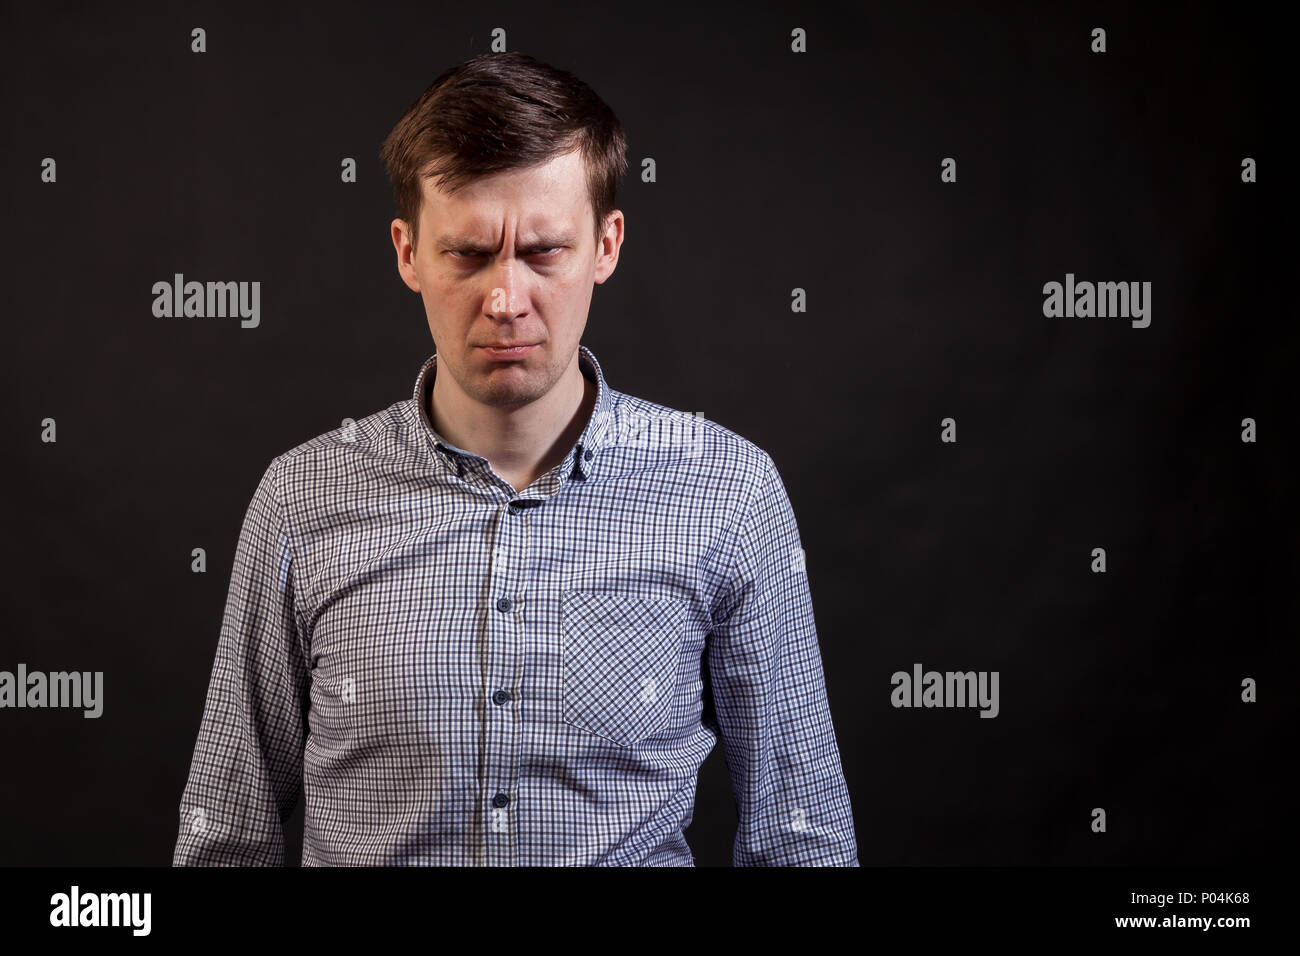 A dark haired white man with distrust expression face knit the brows in a plaid shirt and jeans on a black isolated background - Stock Image